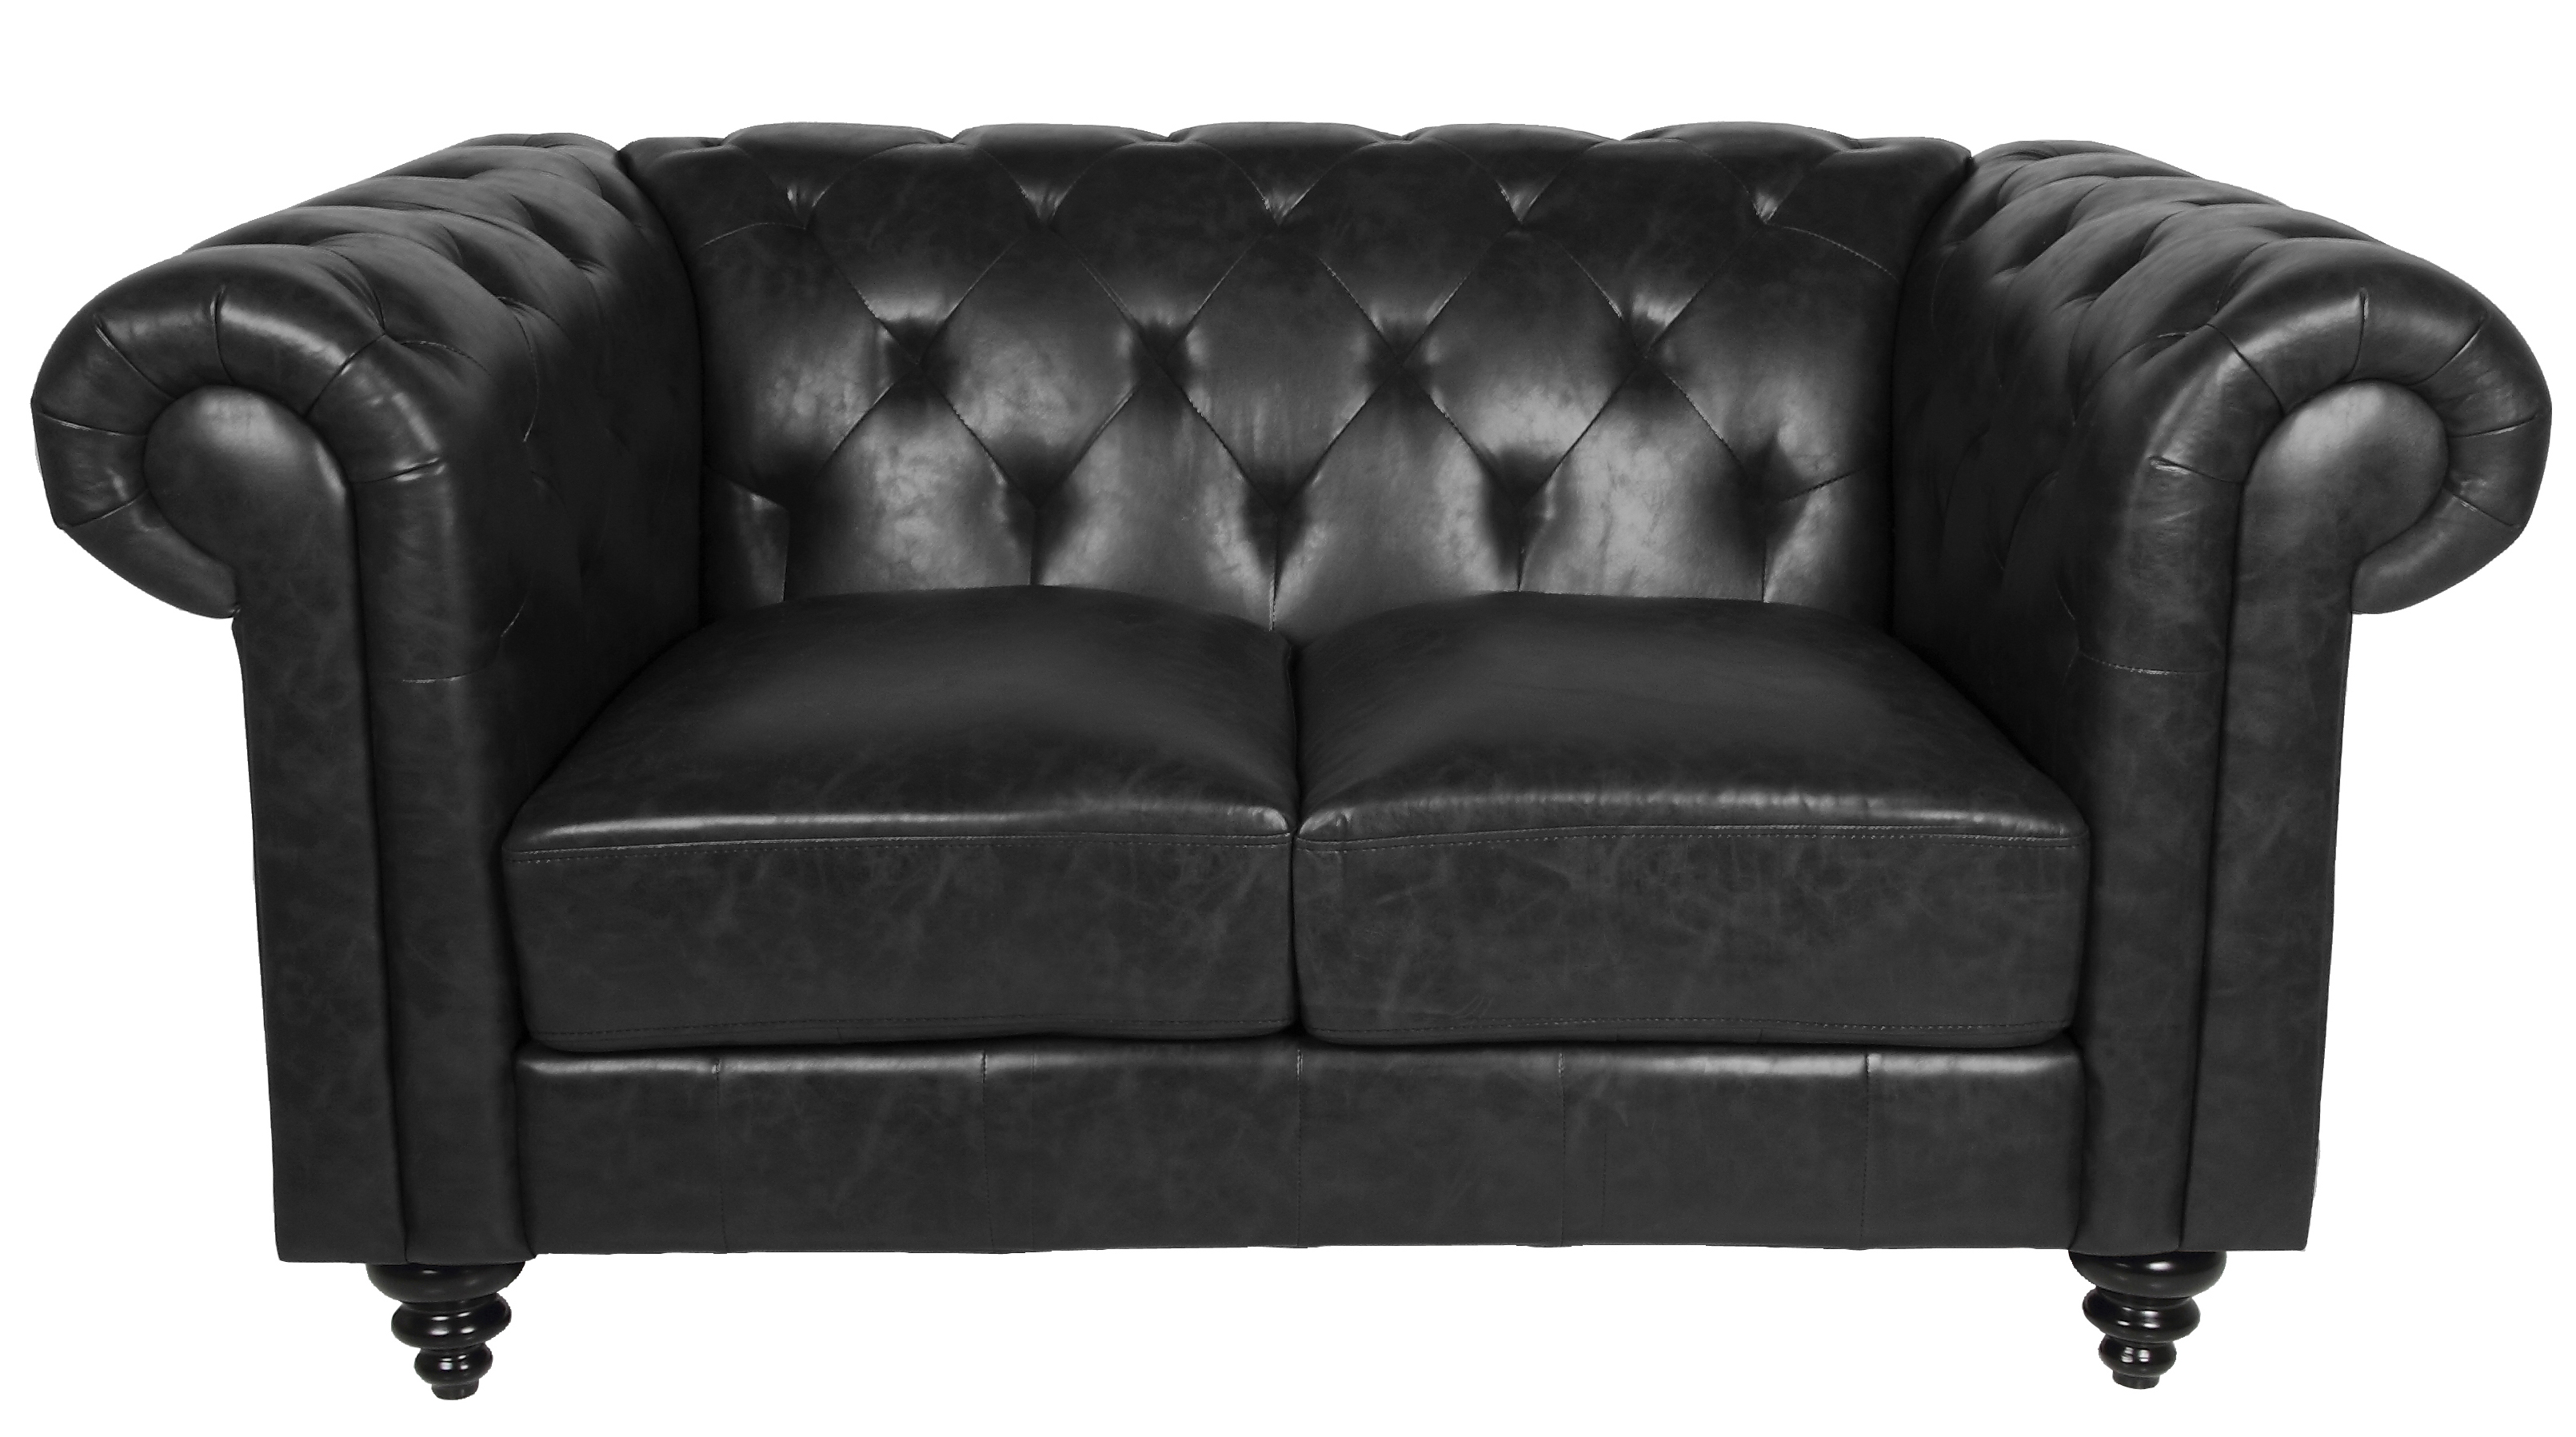 N/A Chester 2-pers. sofa - sort fra unoliving.com